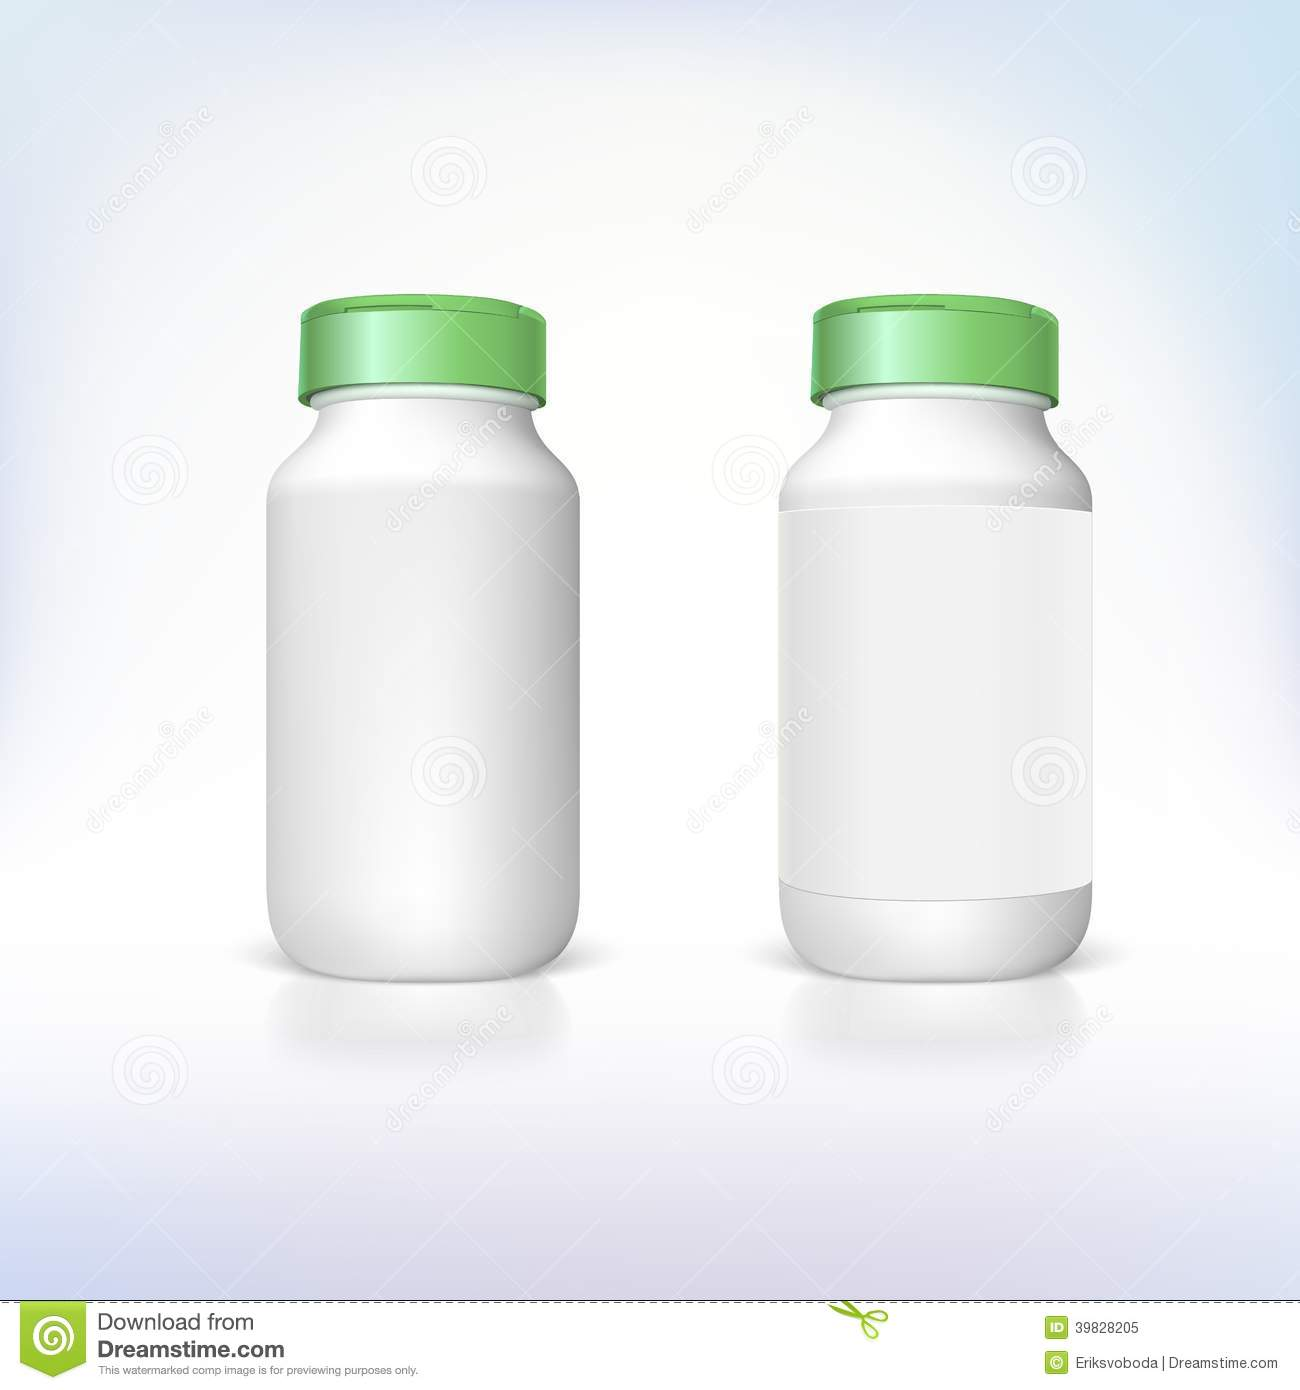 Bottle For Dietary Supplements And Medicines. Stock Vector ...